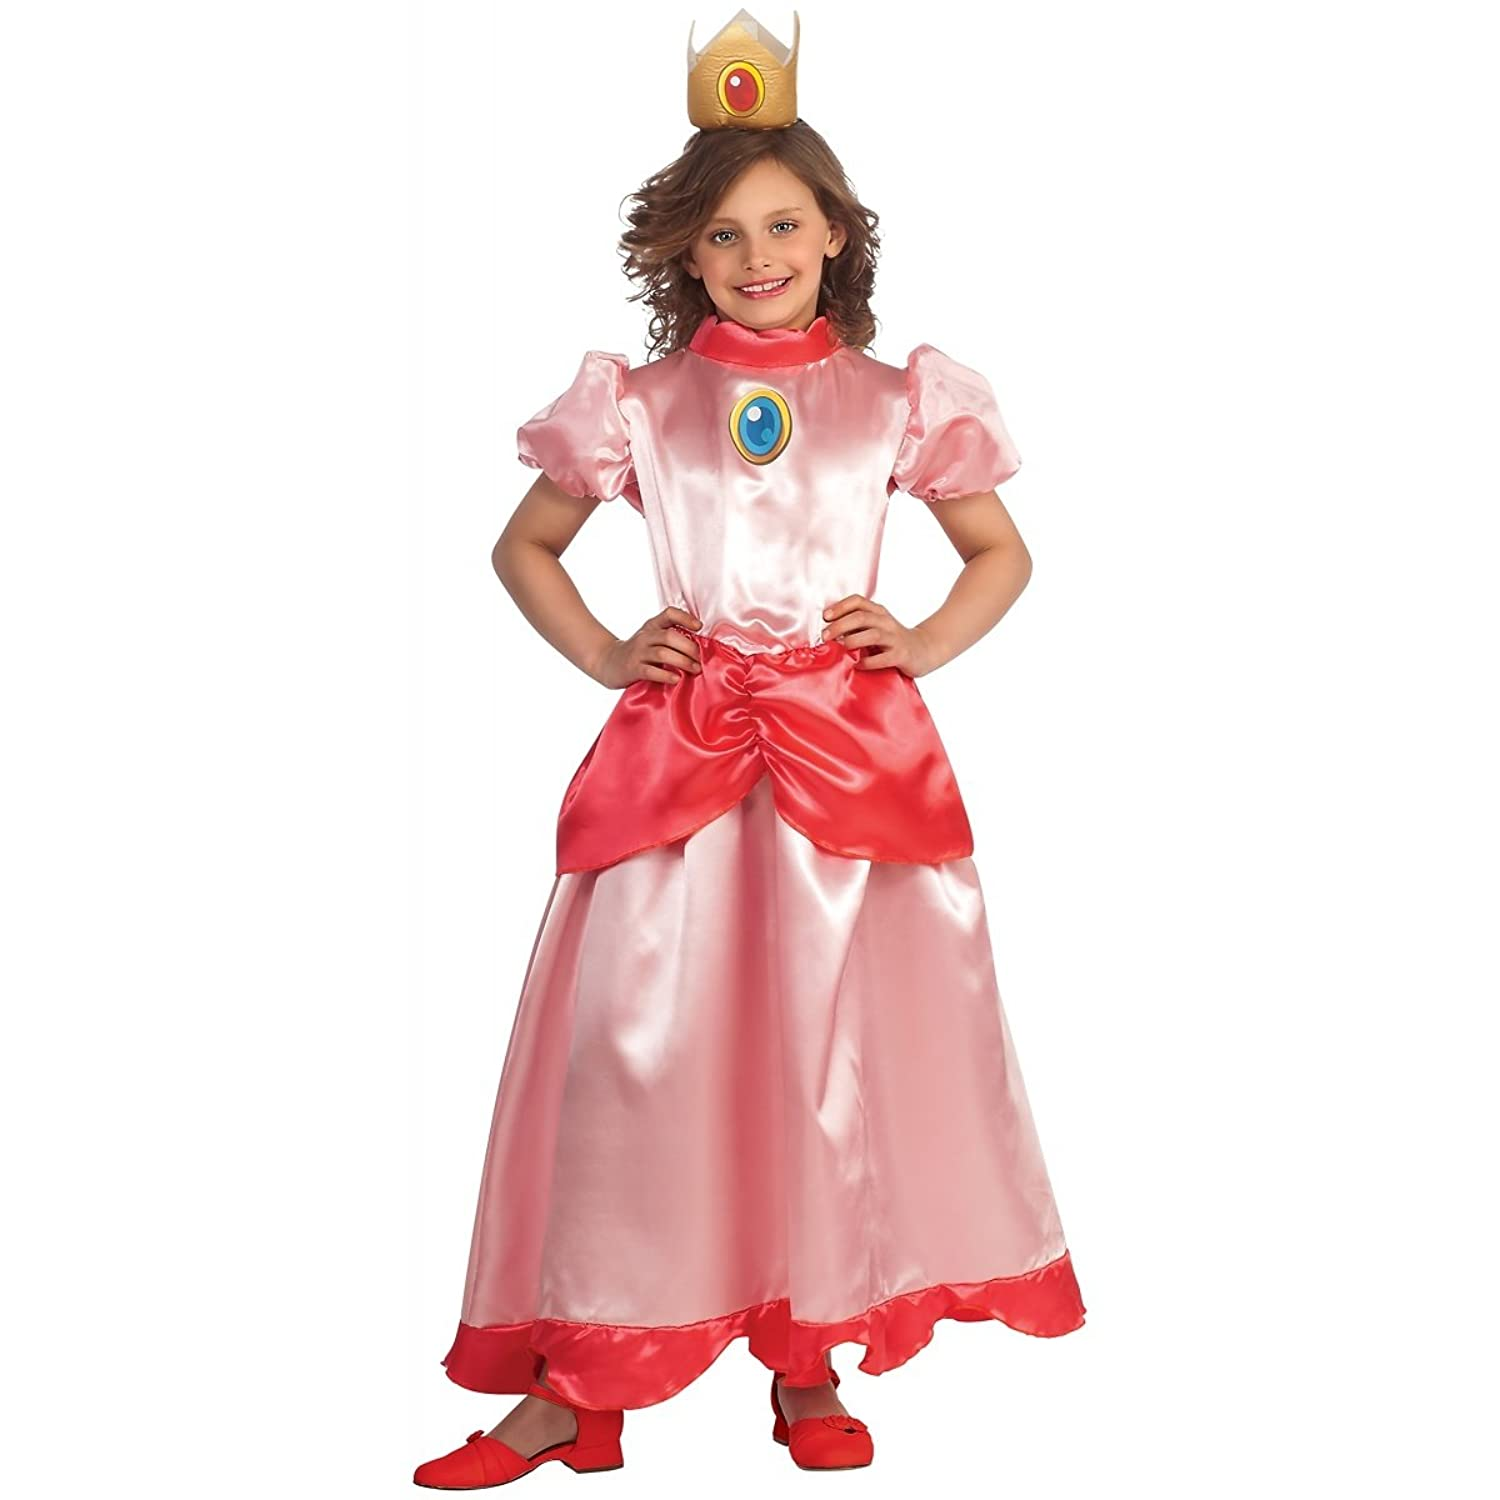 Amazon.com: Princess Peach Costume - Large: Toys & Games